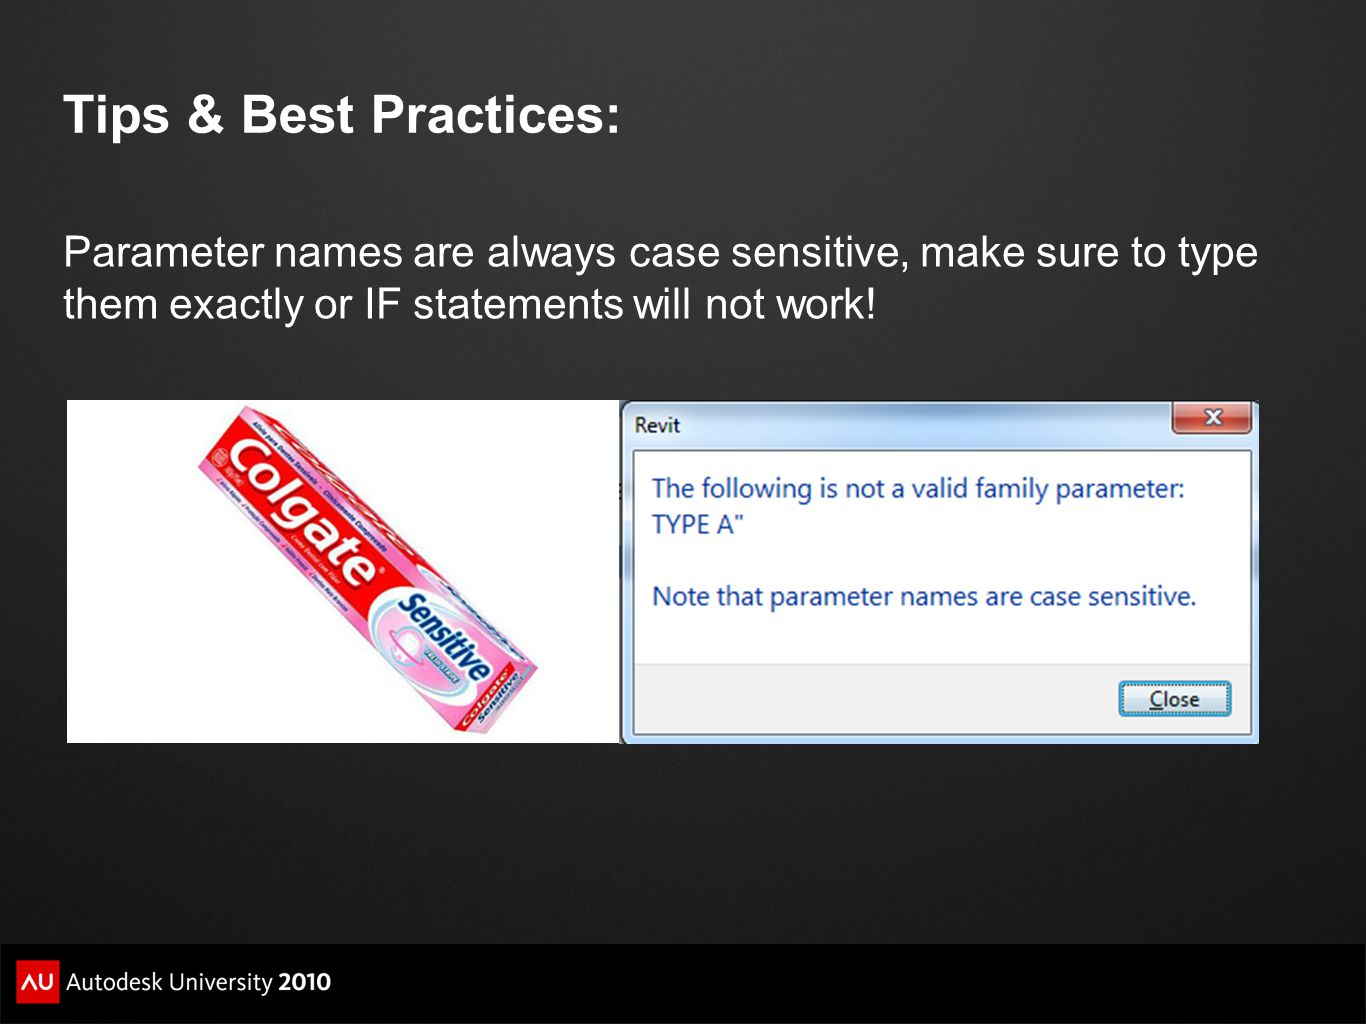 Tips & Best Practices: Parameter names are always case sensitive, make sure to type them exactly or IF statements will not work!